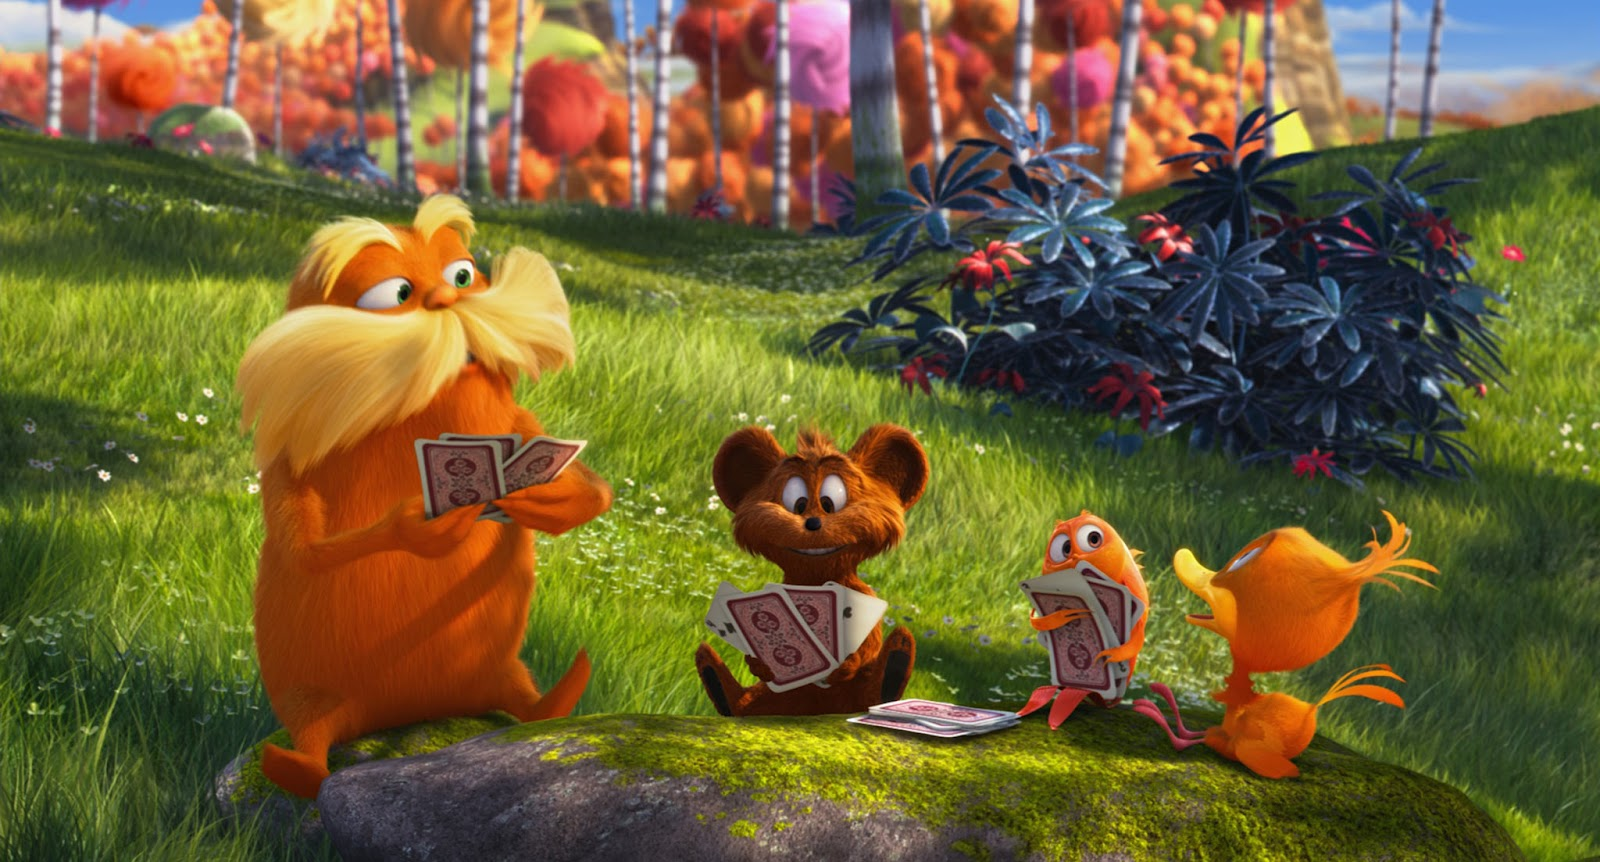 http://3.bp.blogspot.com/-HaEF83mYM6Q/UGF0UGHoQpI/AAAAAAAABFg/1fy2_RWG_Ng/s1600/CARTOON+WALLPAPER++-+lorax+the+movie+wallpaper+5.jpg